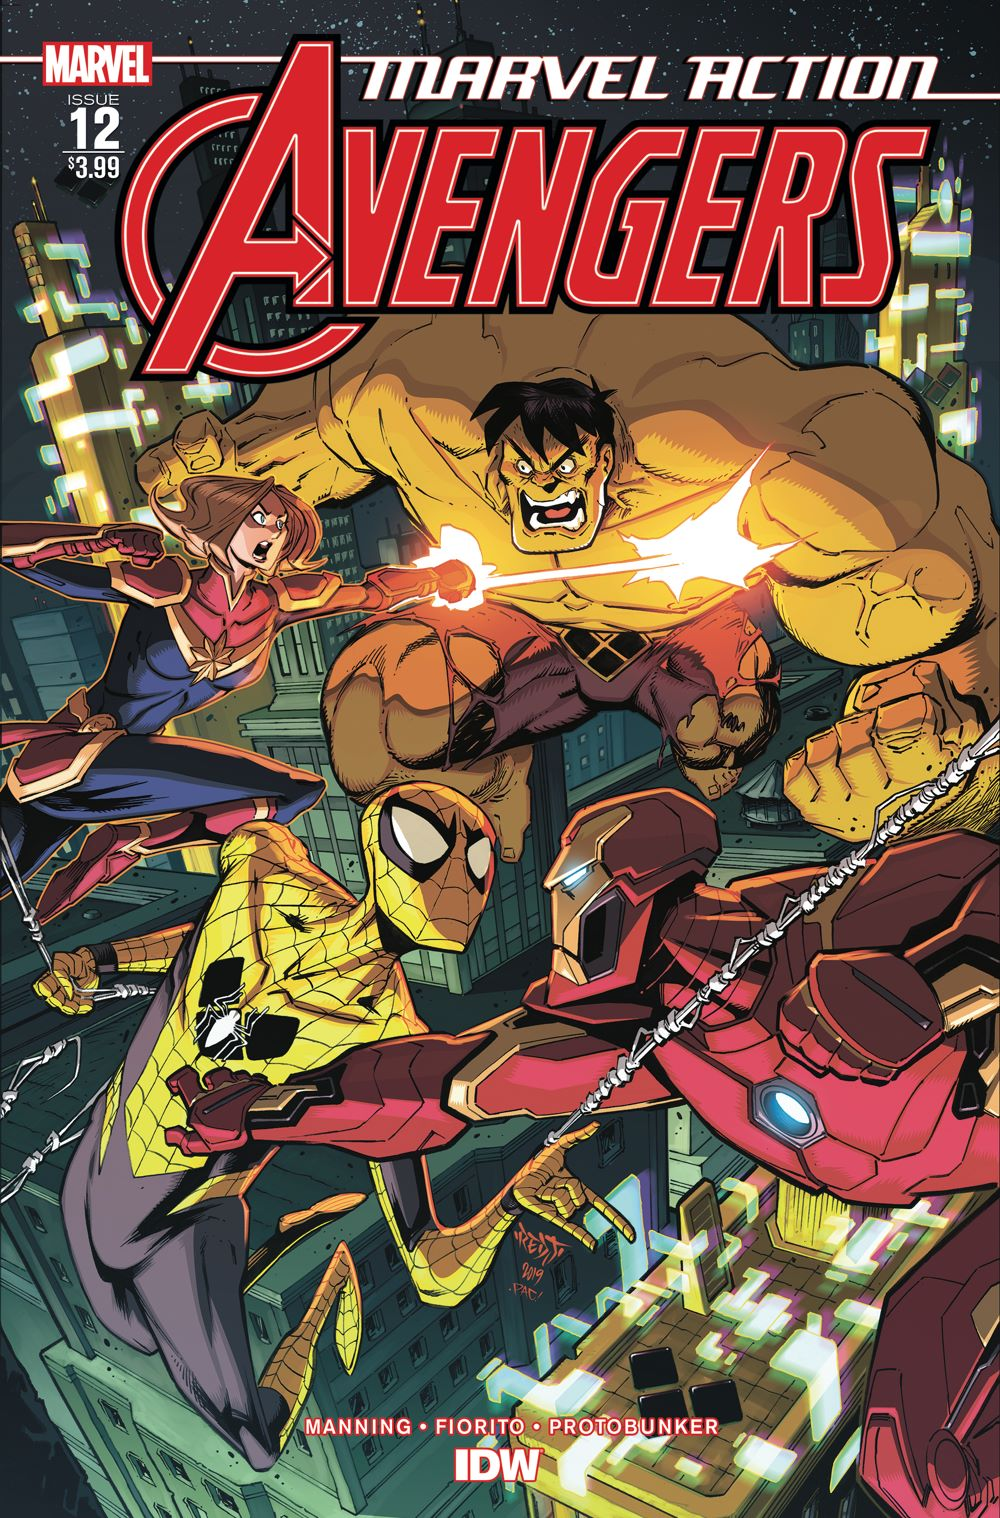 Marvel_Avengers12_coverA ComicList Previews: MARVEL ACTION AVENGERS #12